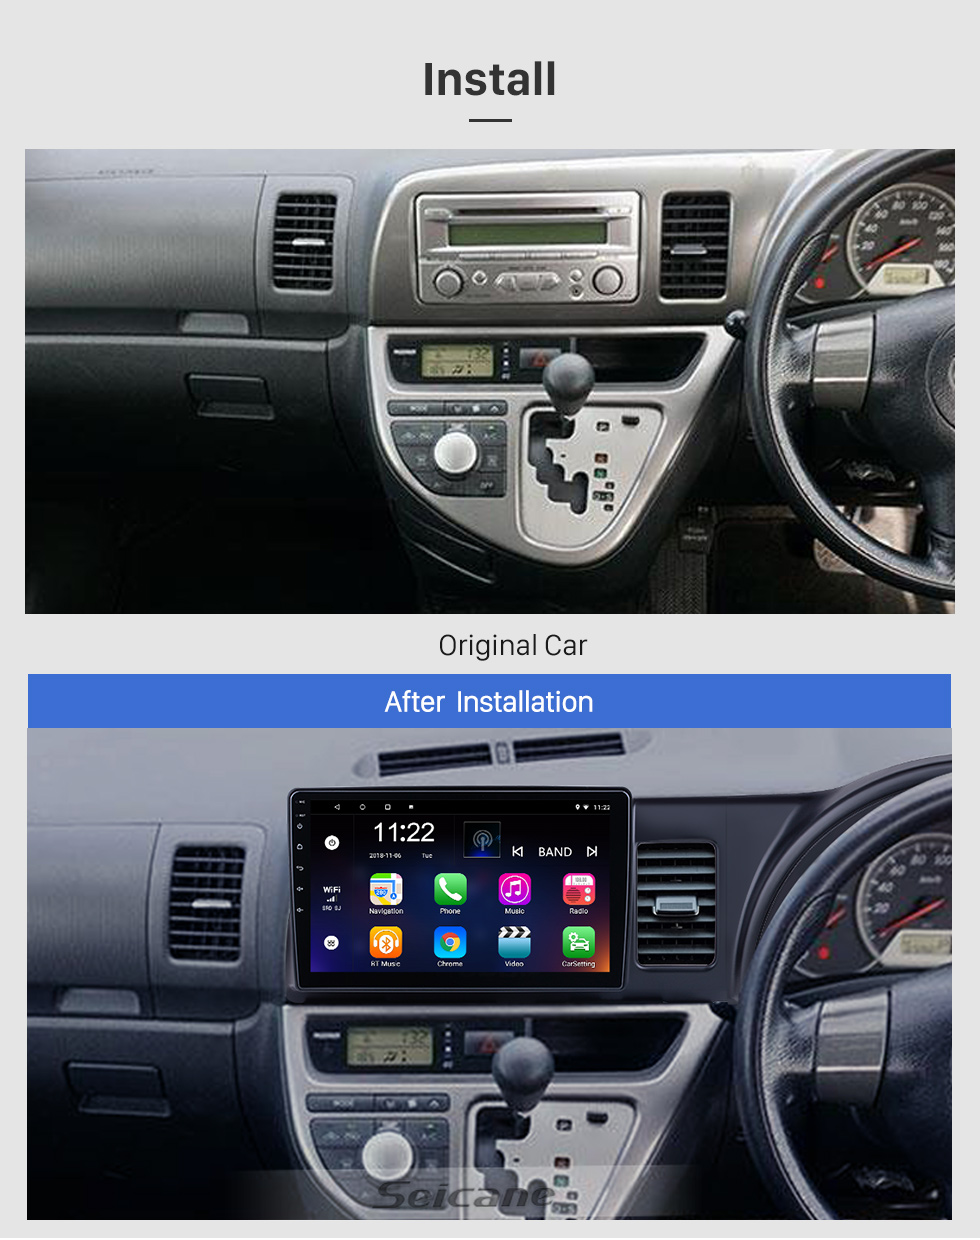 Seicane 10.1 inch Android 10.0 for 2006 Toyota Wish Radio GPS Navigation System With HD Touchscreen Bluetooth support Carplay OBD2